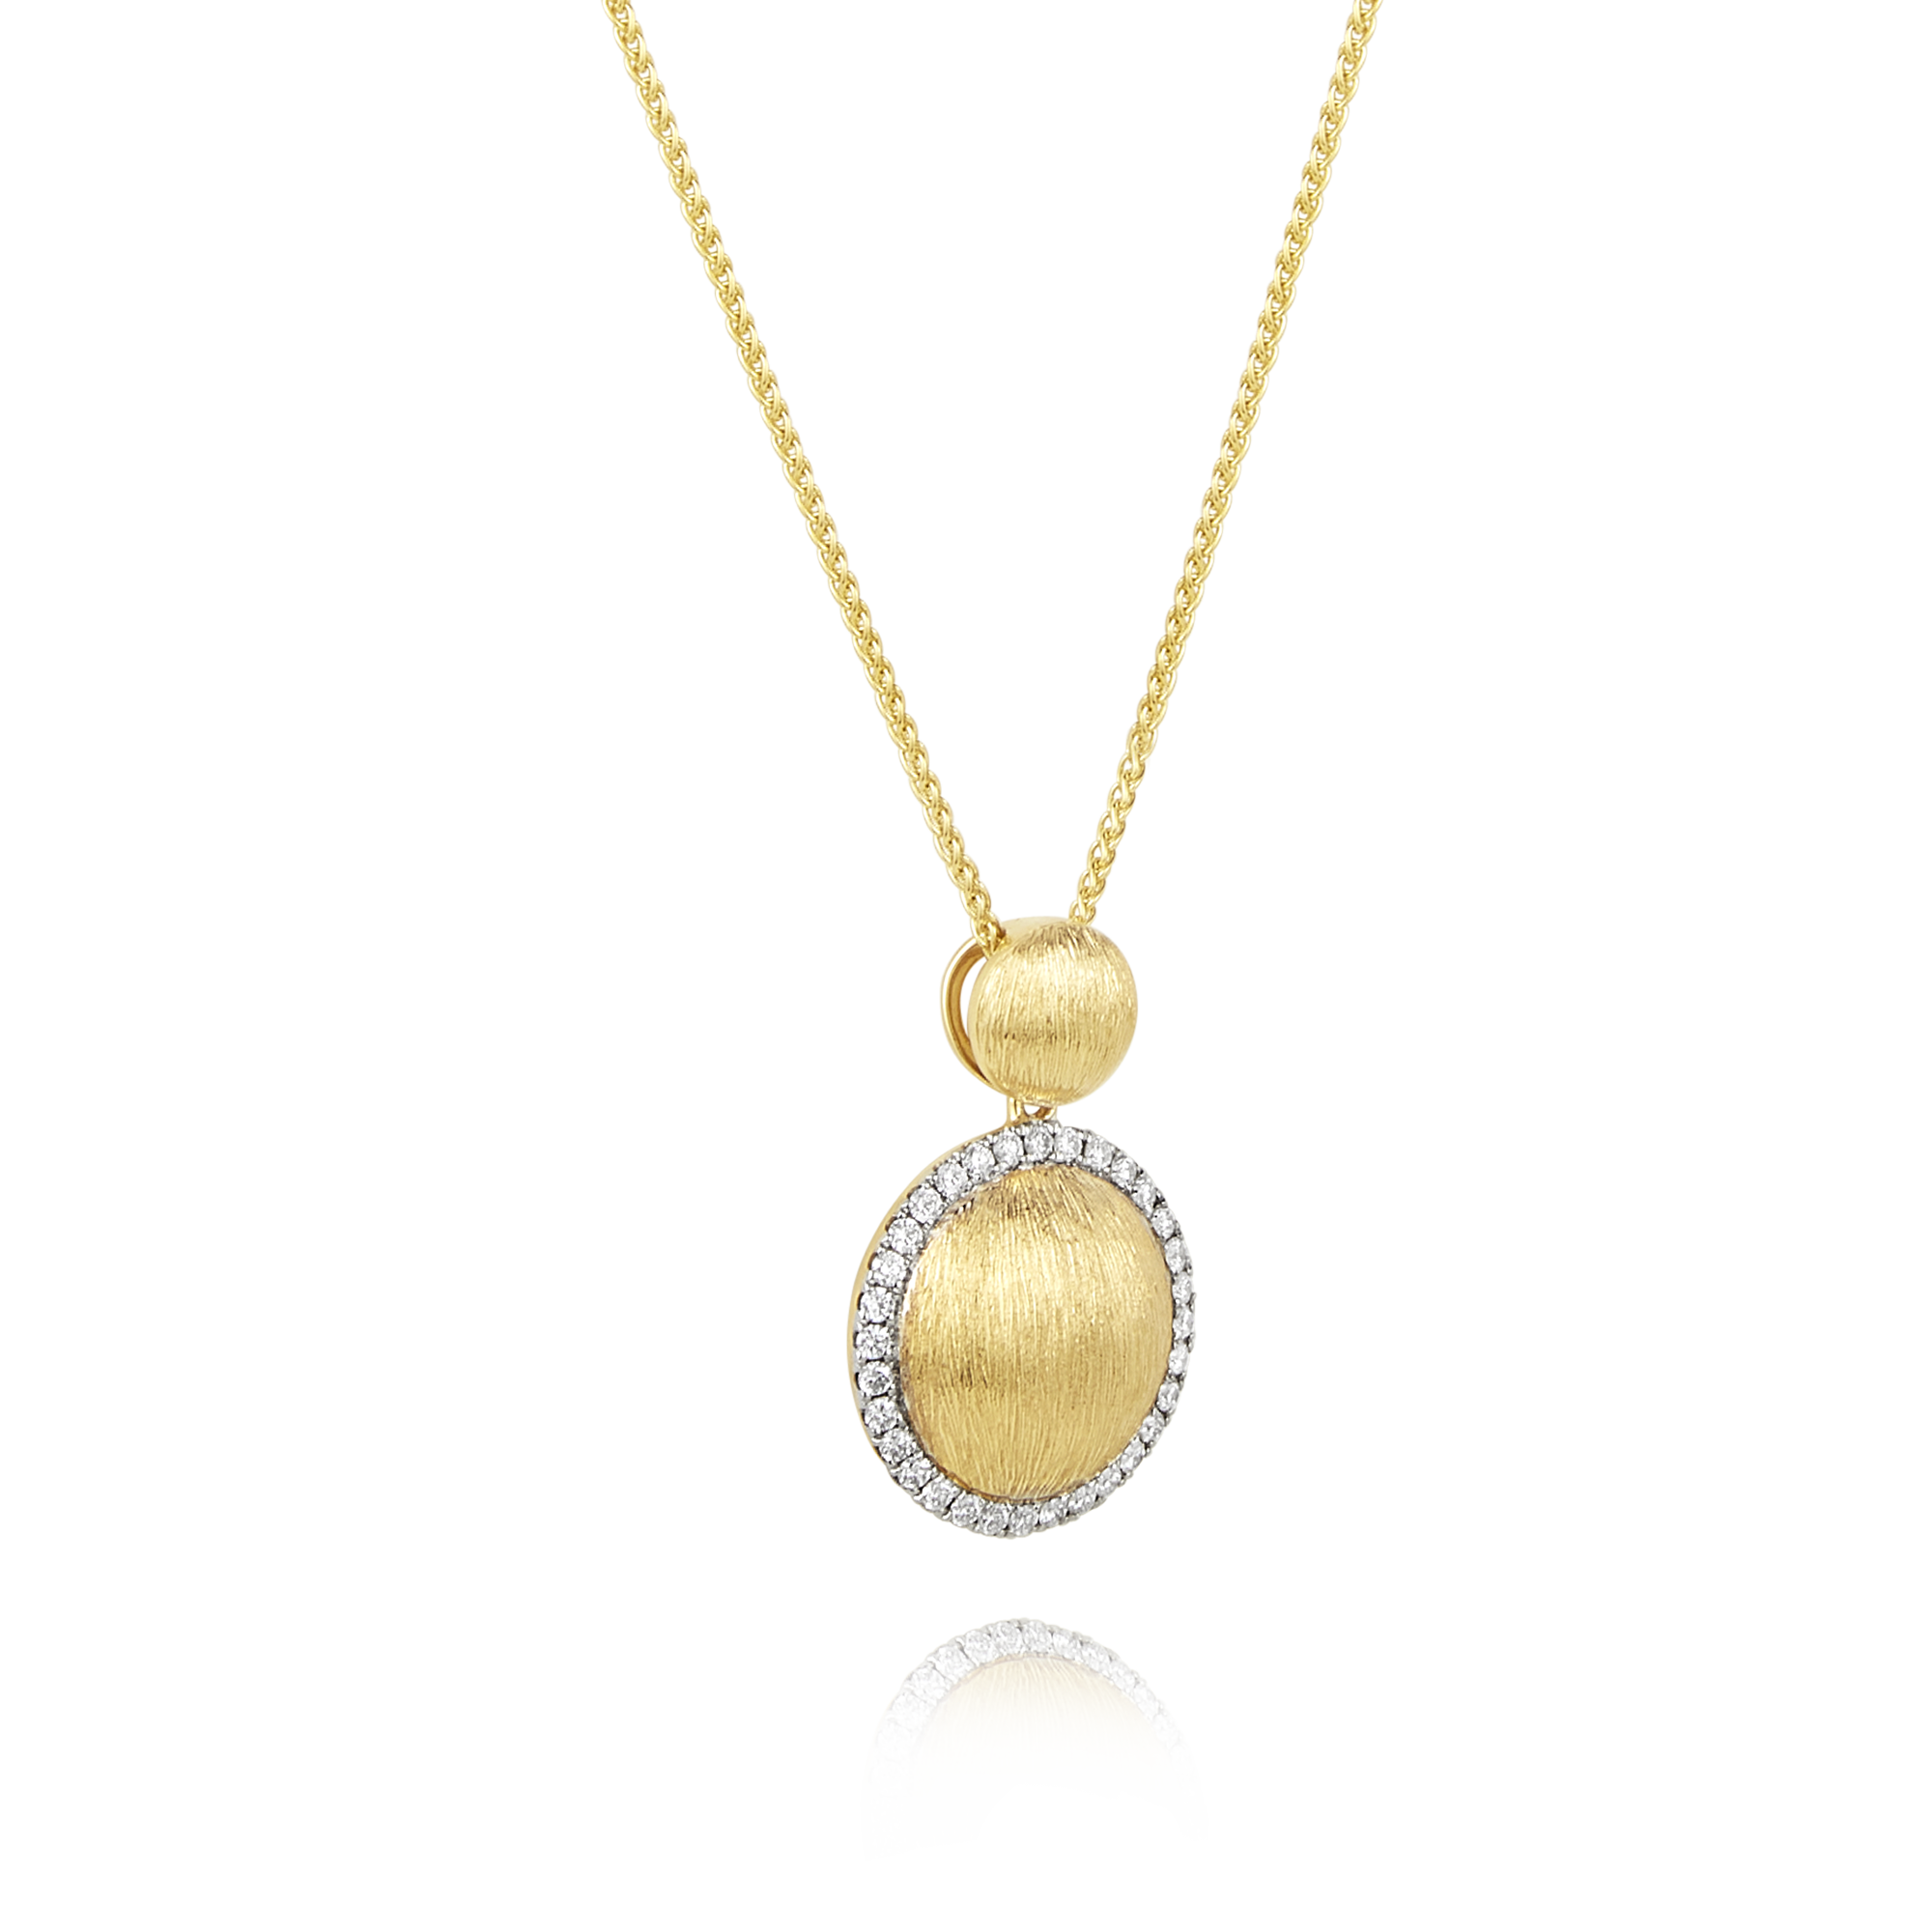 18ct Brushed Gold and Diamond Pendant